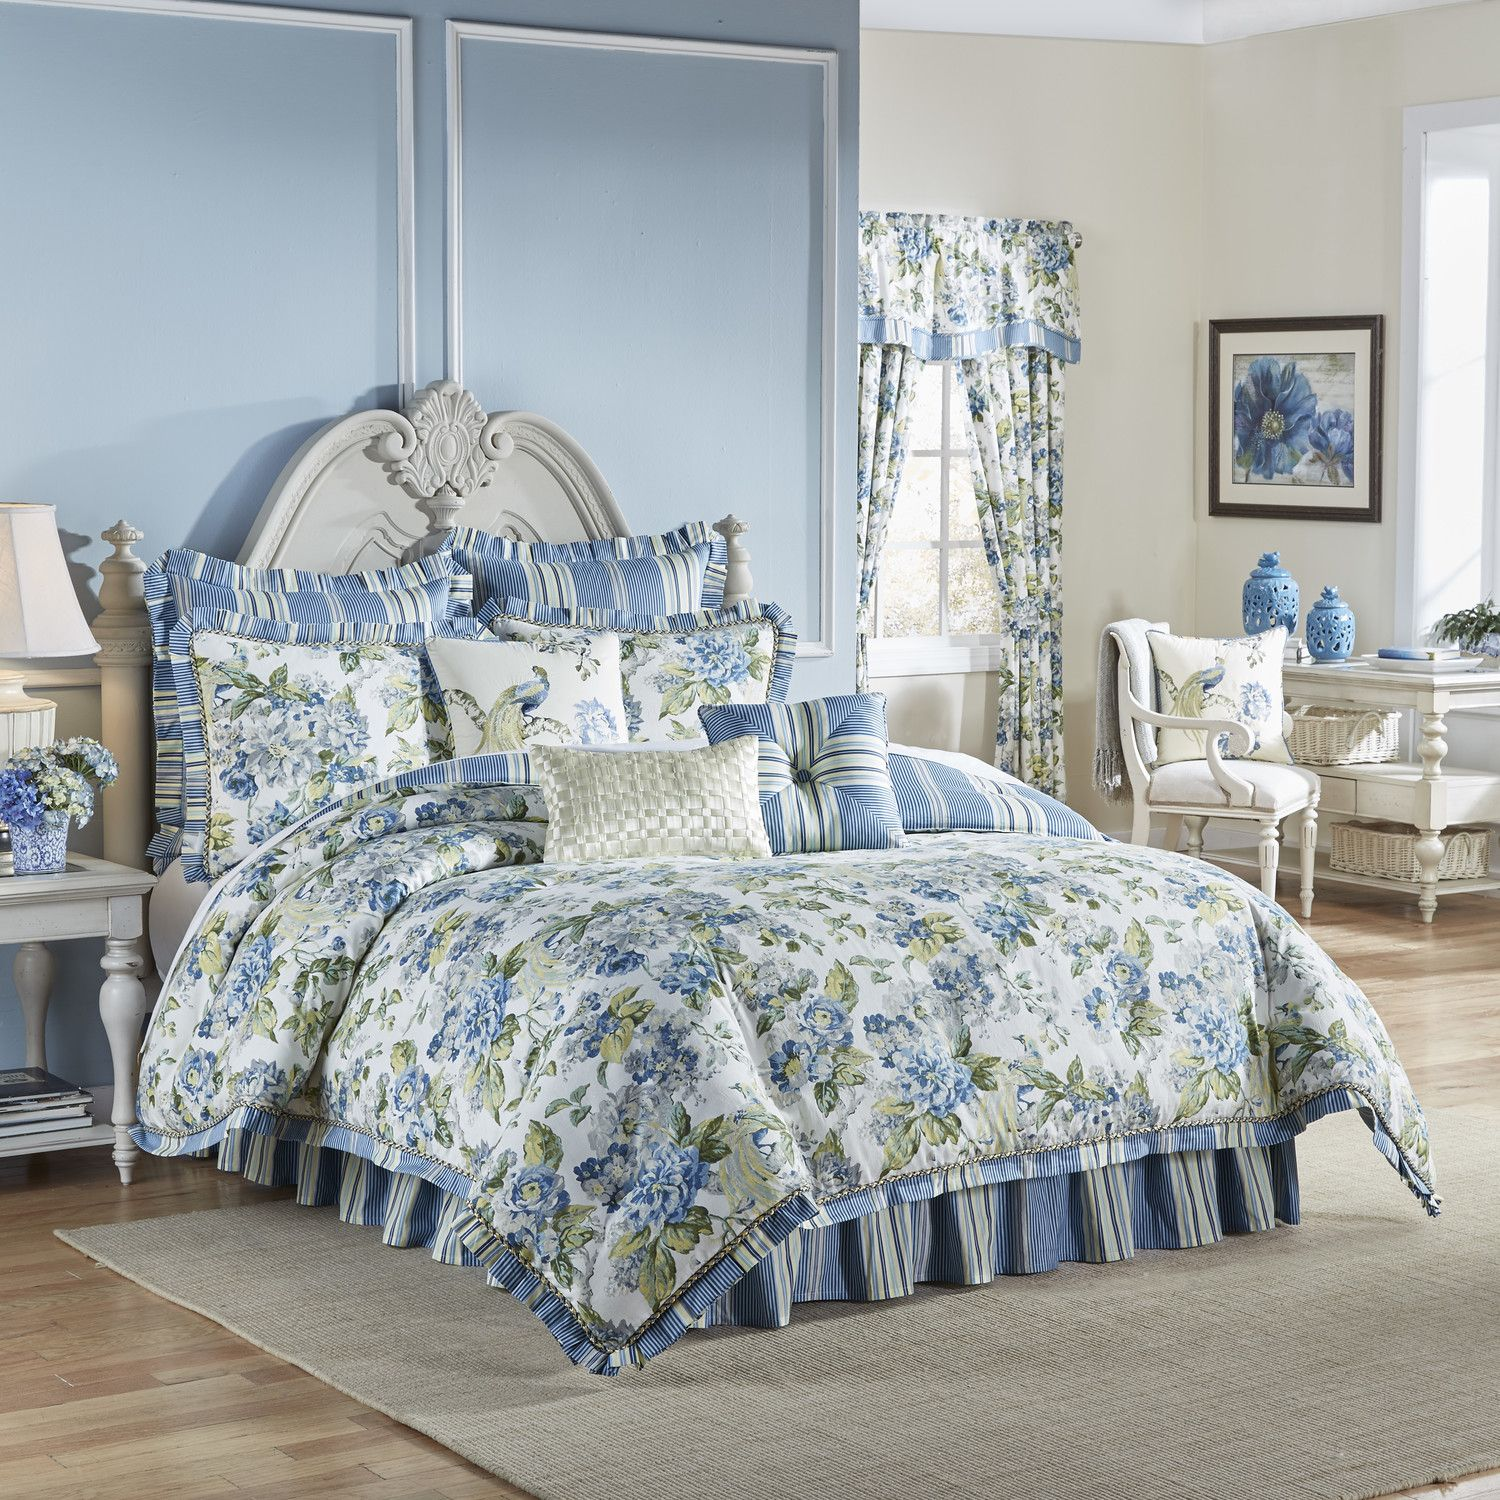 Bed sets Waverly Floral Engagement 4 Piece